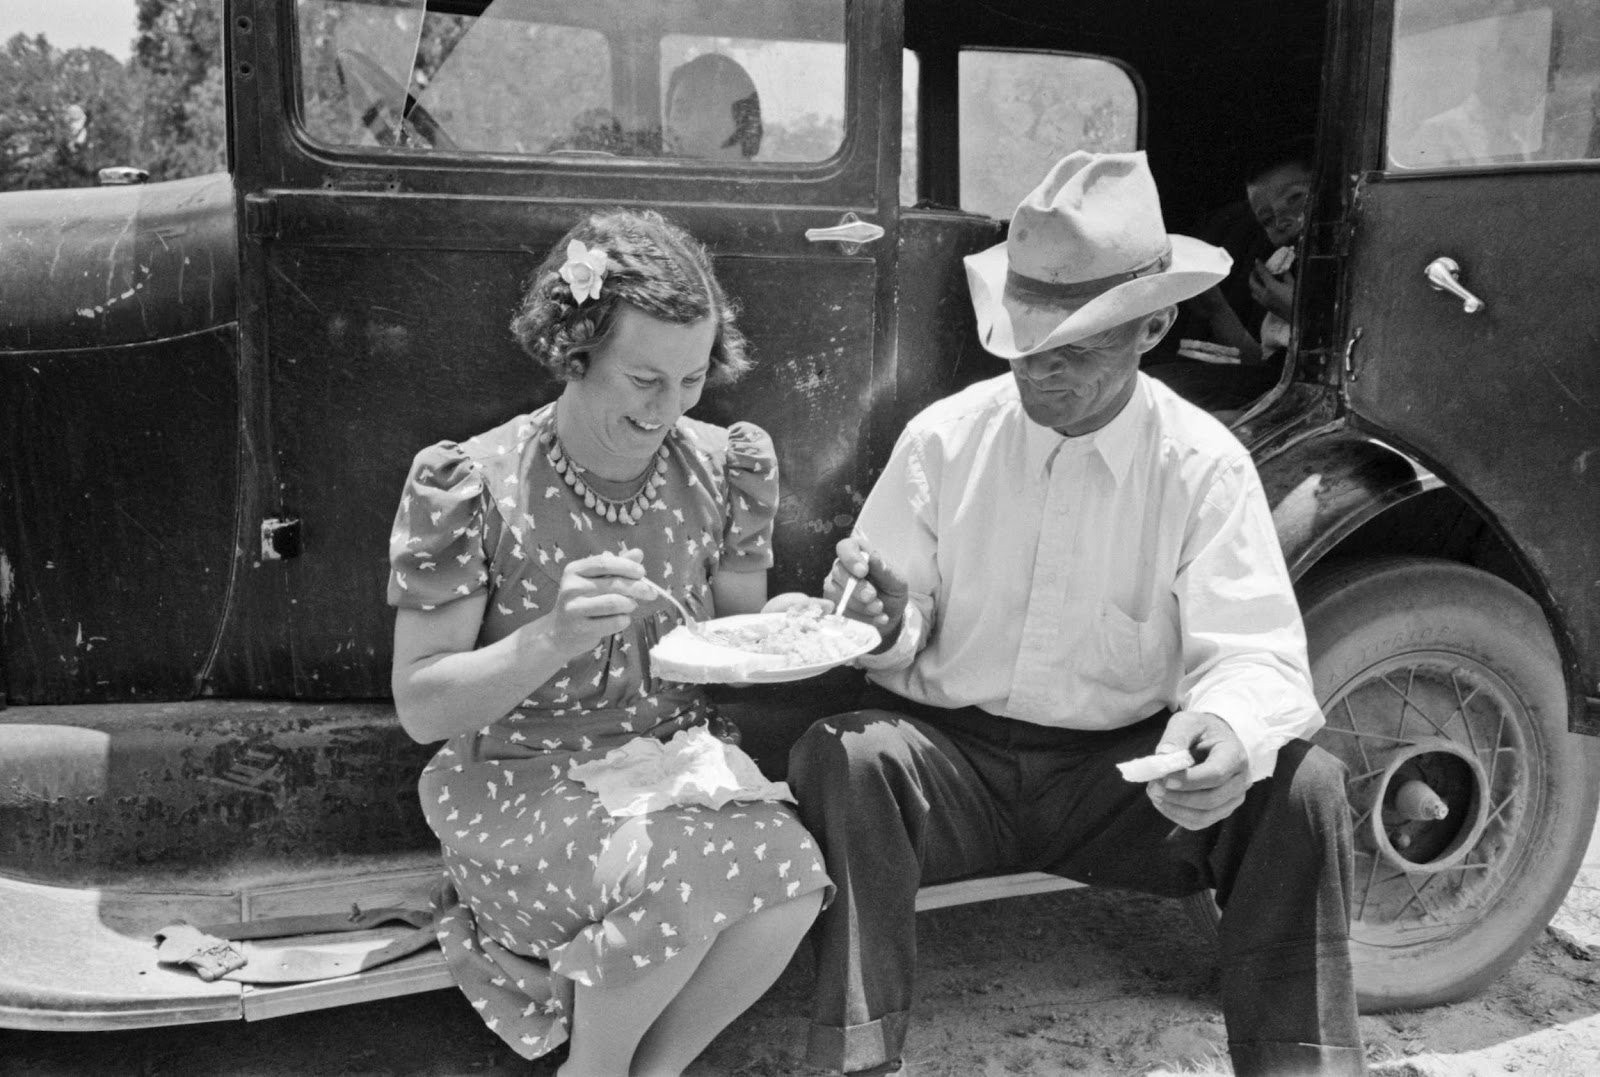 History In Photos Russell Lee Pie Town Black And White